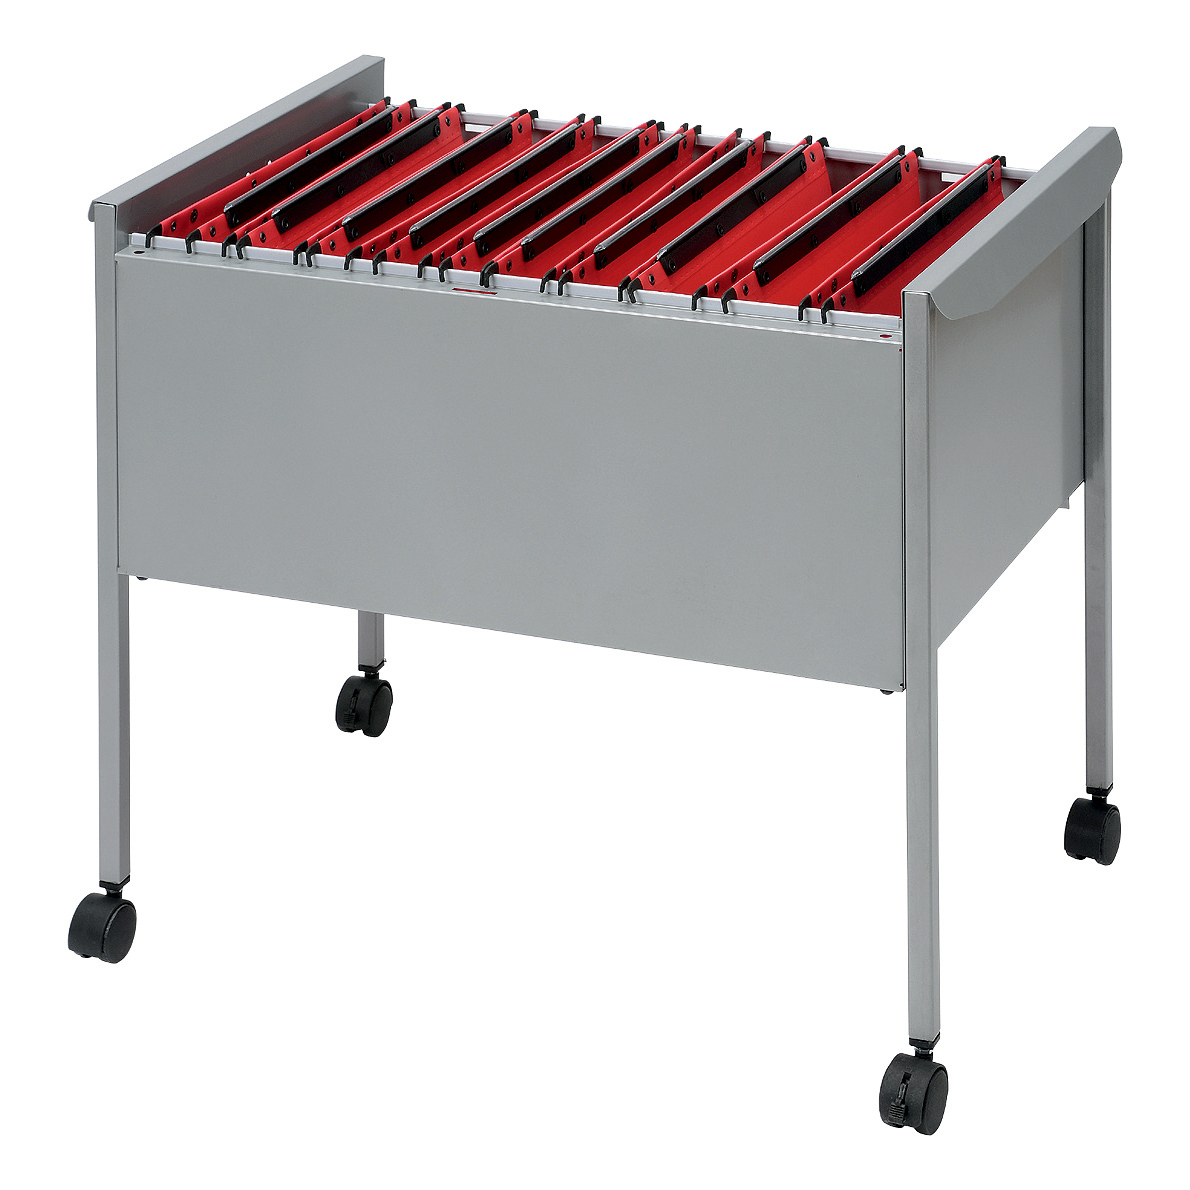 Image for Rexel Suspension Filing Trolley Capacity 100 Susp Files W660xD425xH590mm Grey Ref 50559